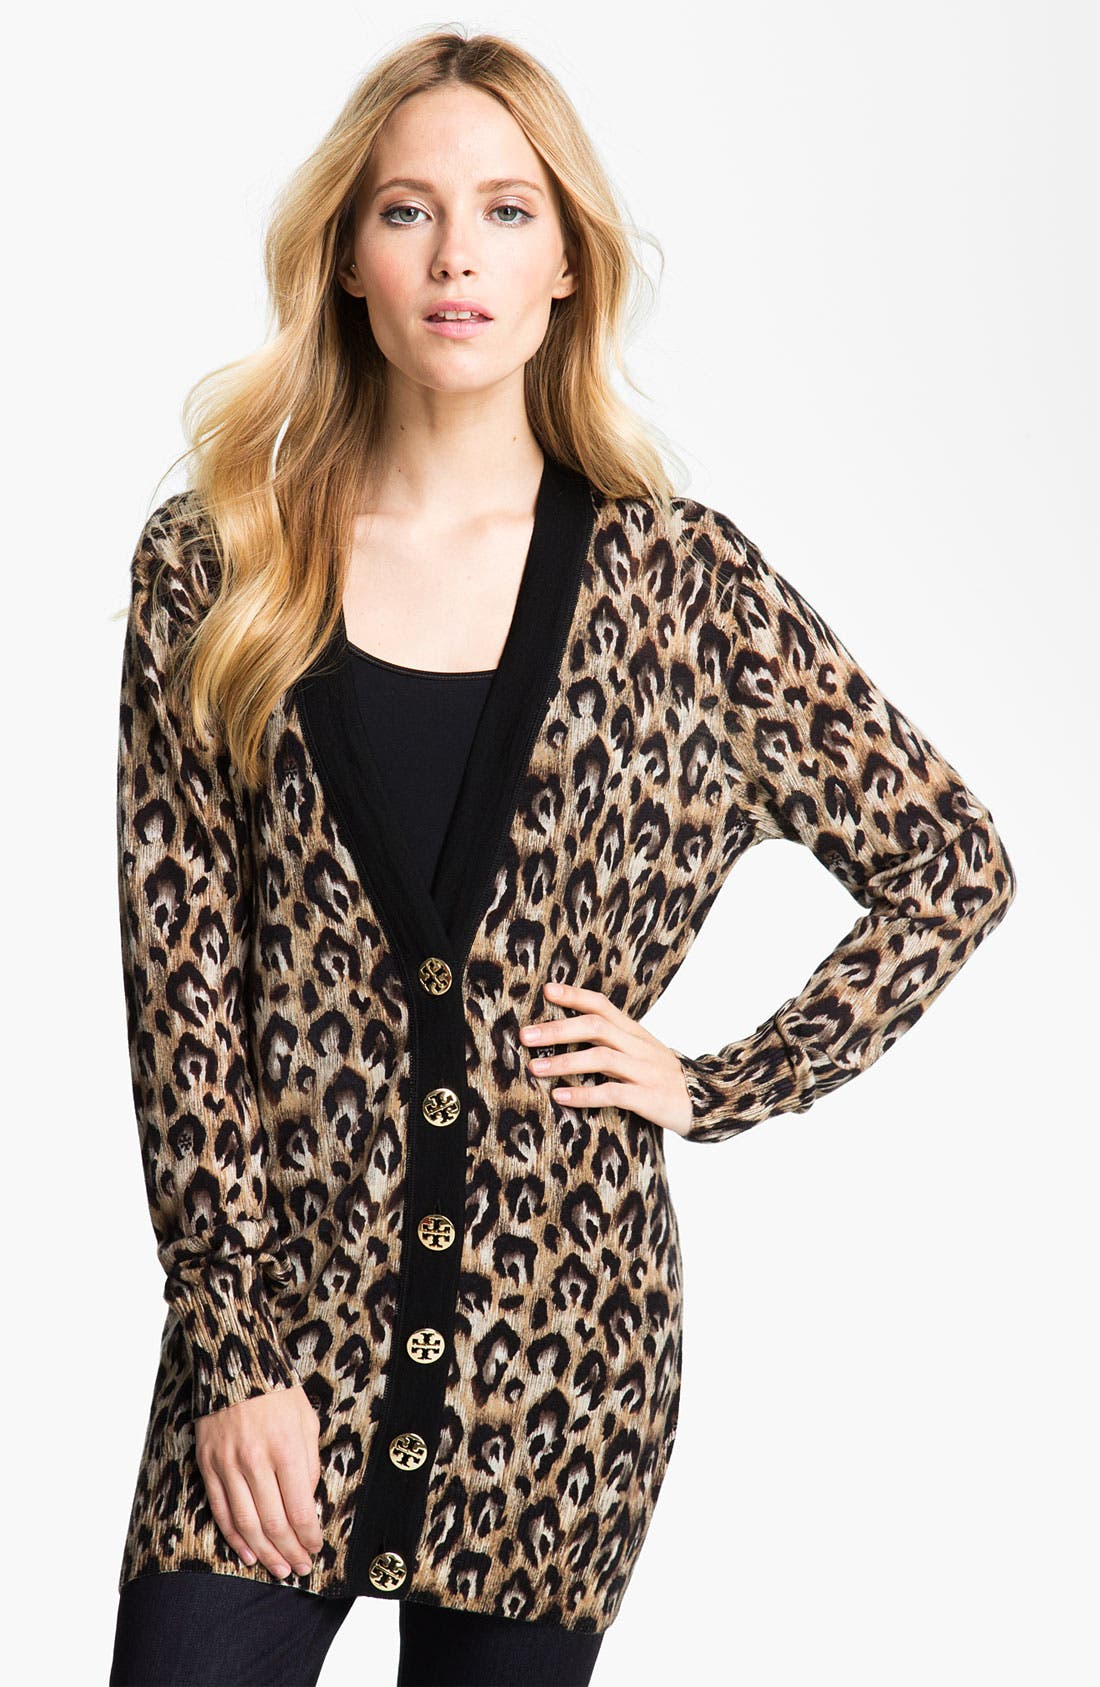 Alternate Image 1 Selected - Tory Burch 'Simone' Cardigan (Nordstrom Exclusive)